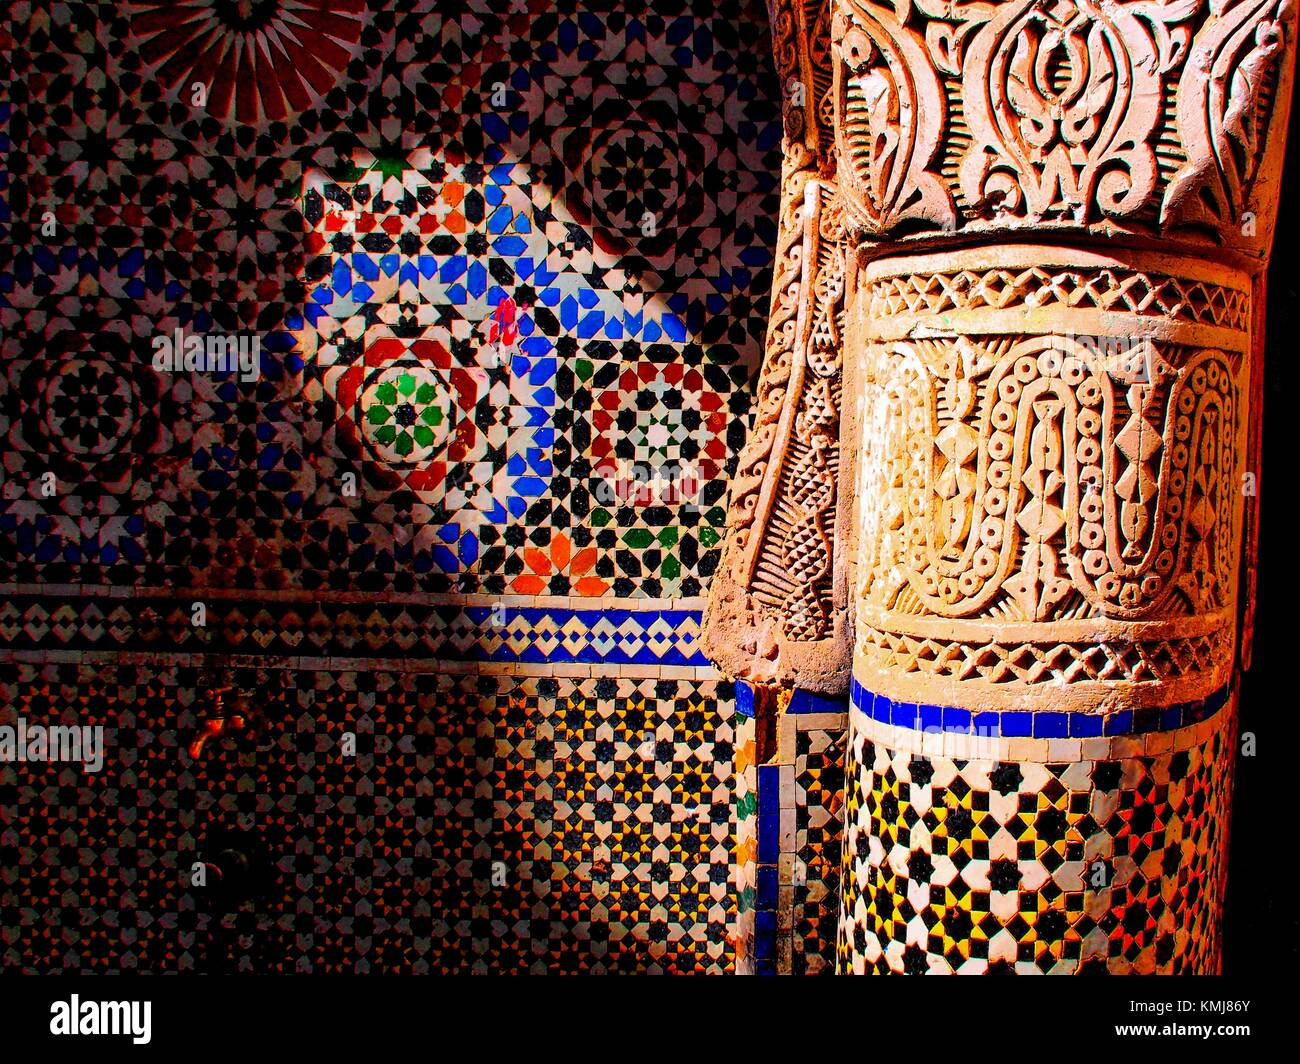 Morocco, Fes, detail of the Nejarrine fountain in the ''Medina'' (old part) of Fes. - Stock Image